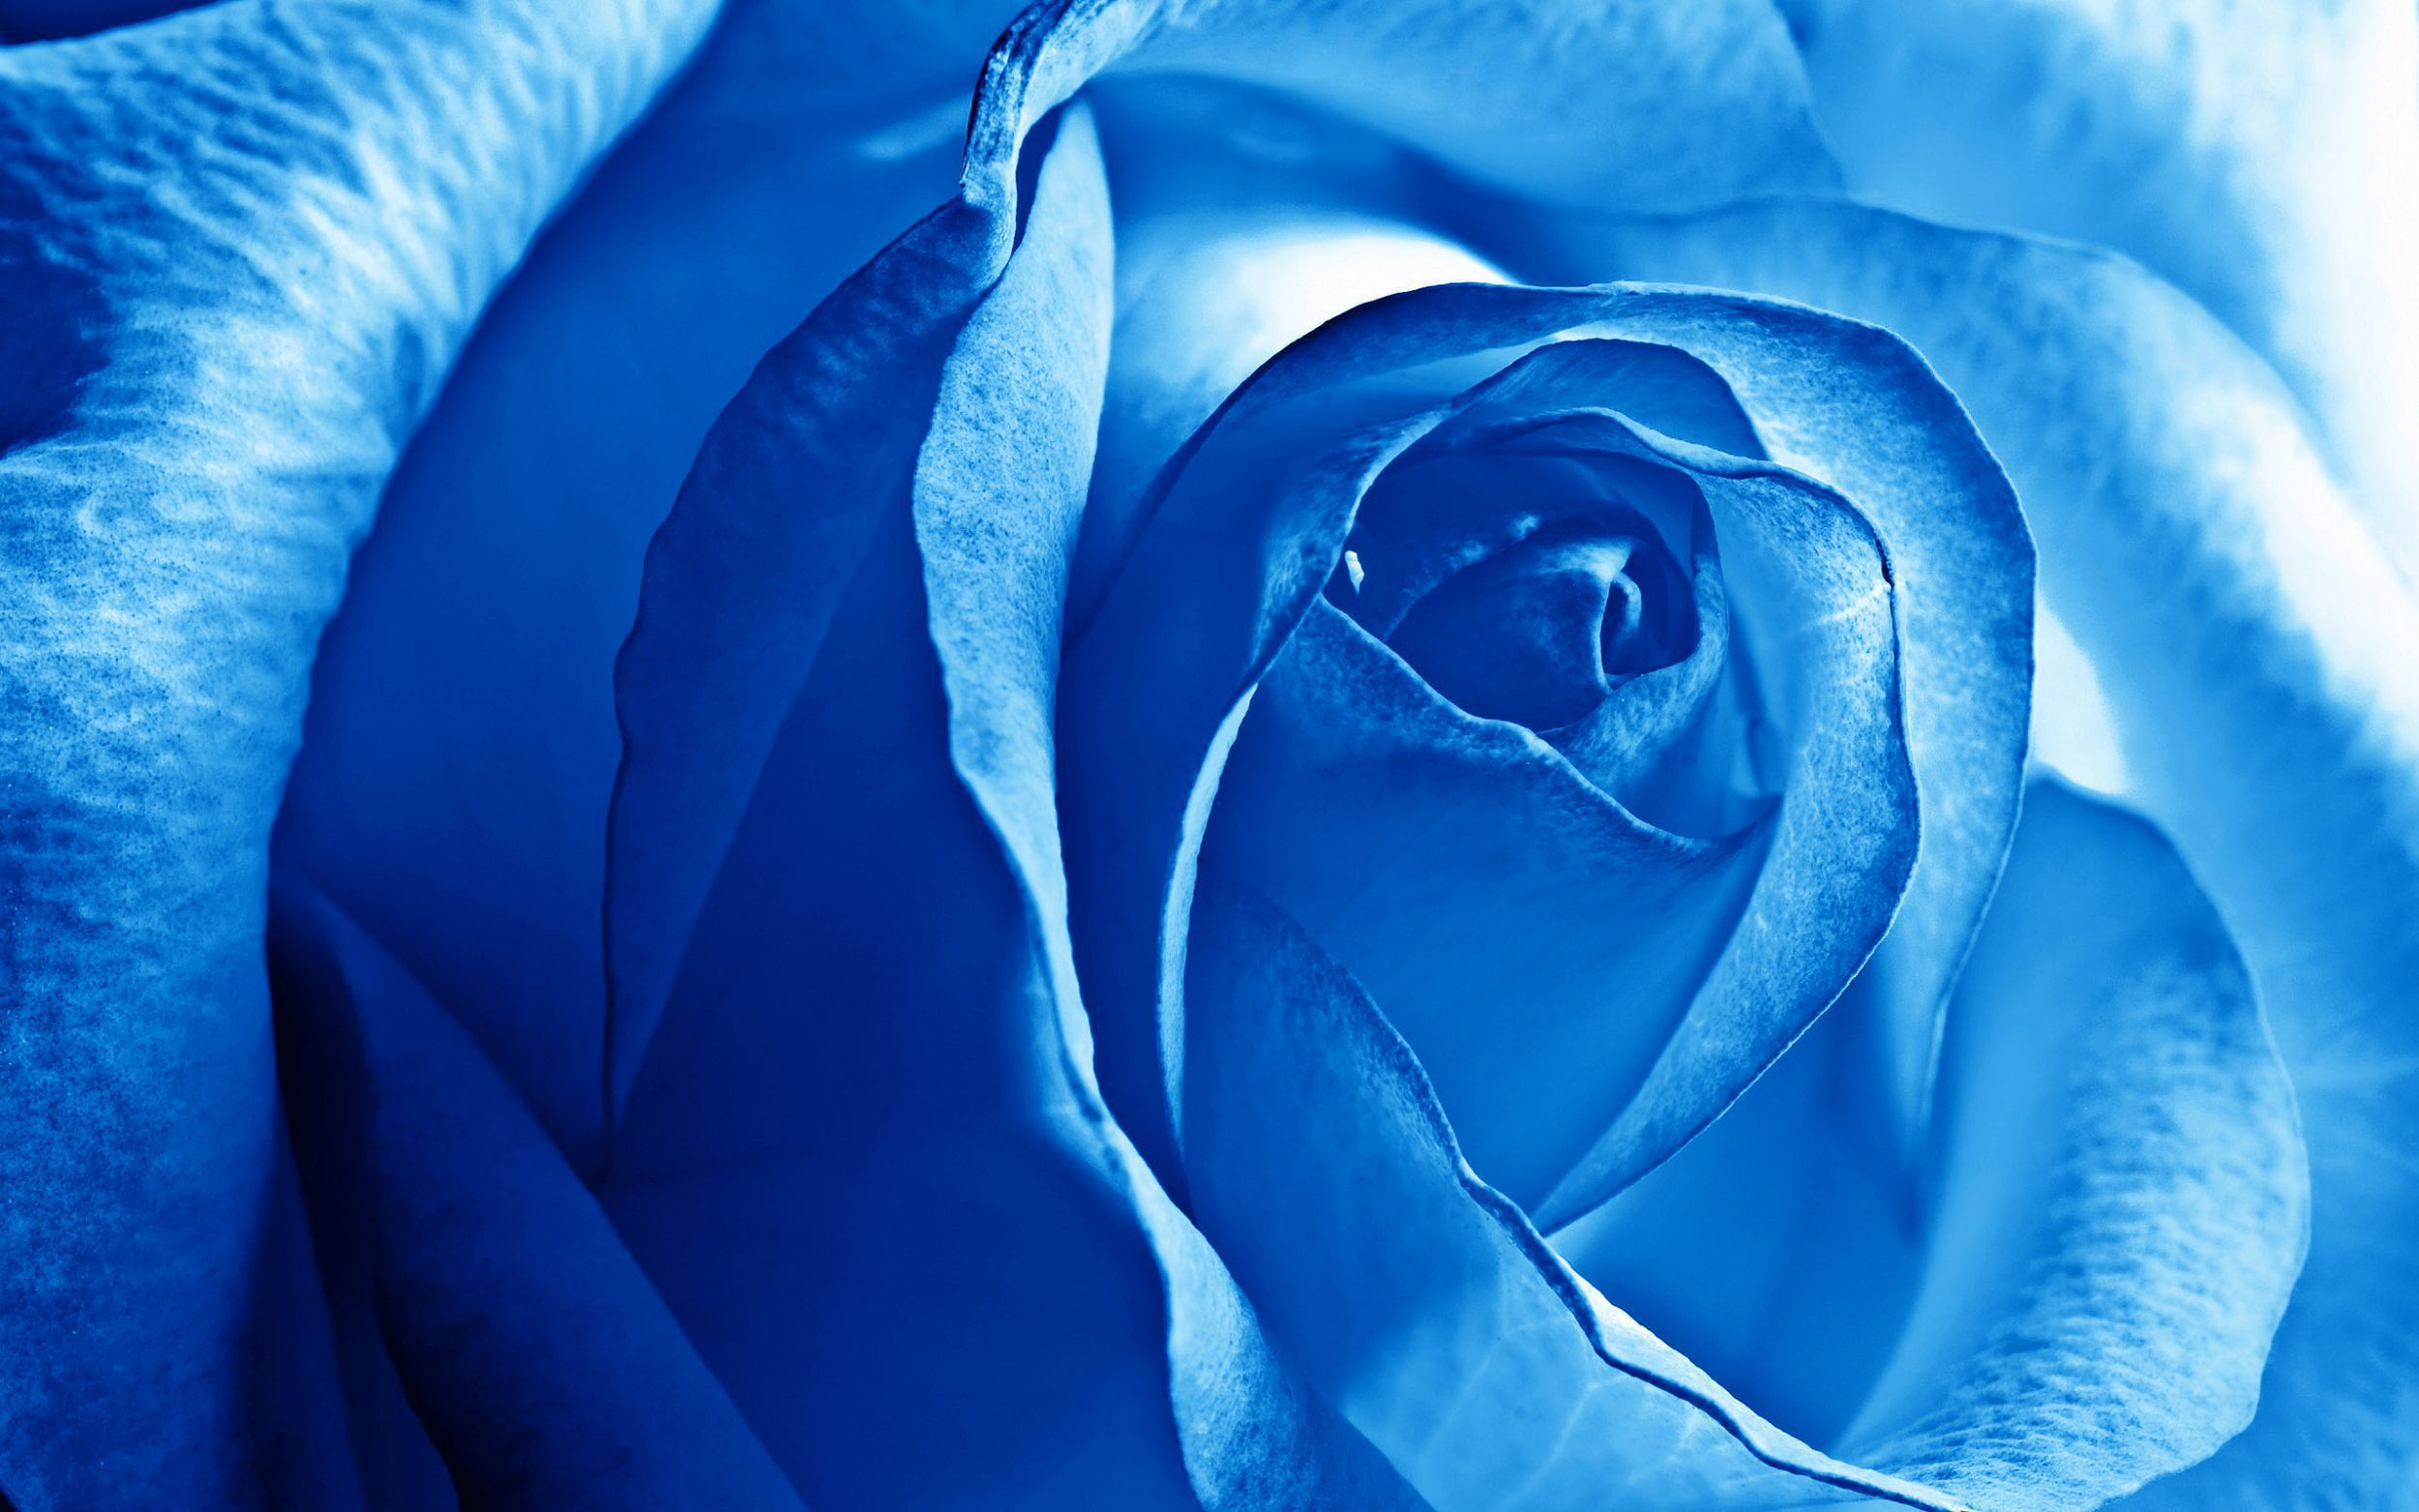 Blue Roses HD Background